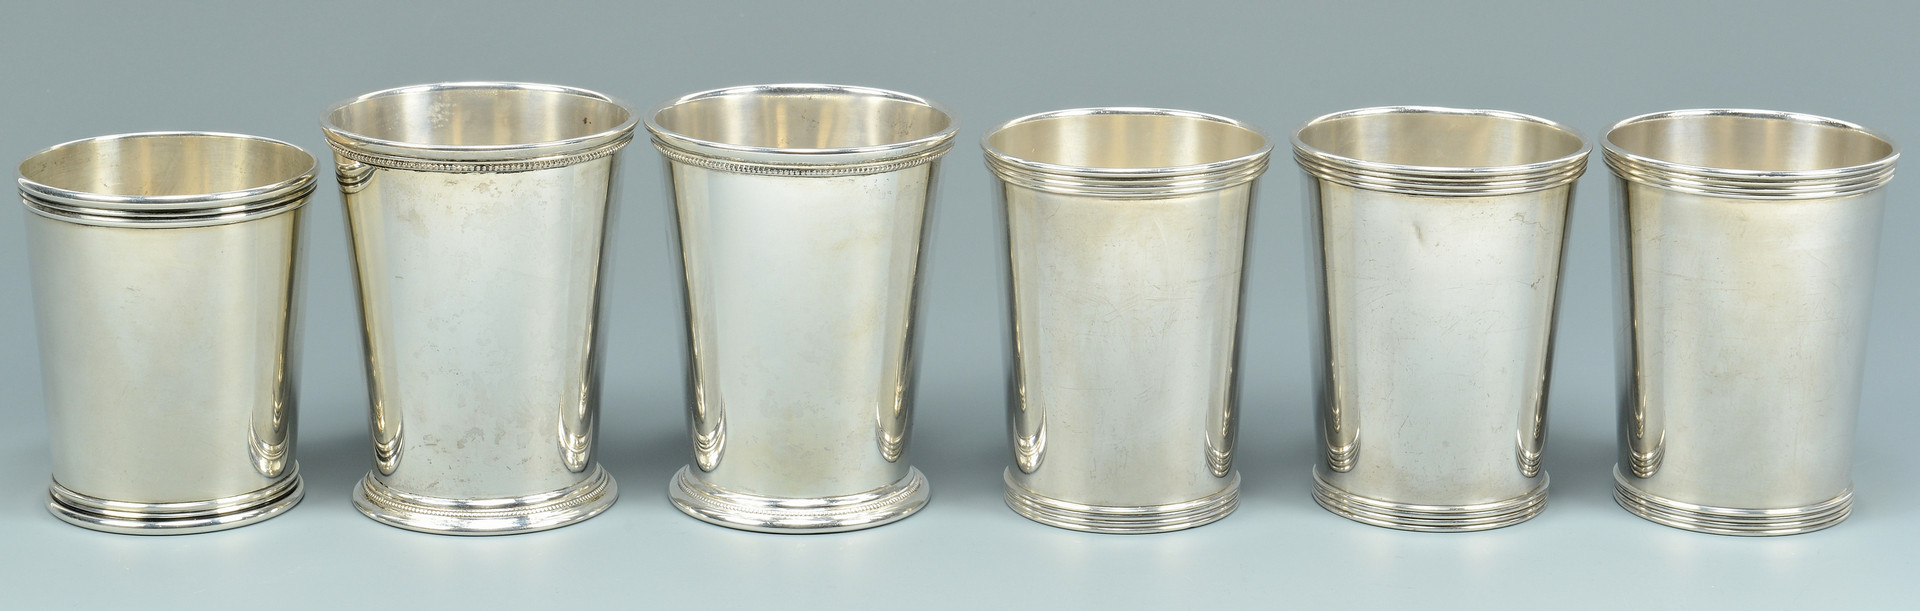 Lot 687: 6 Sterling Silver Julep Cups